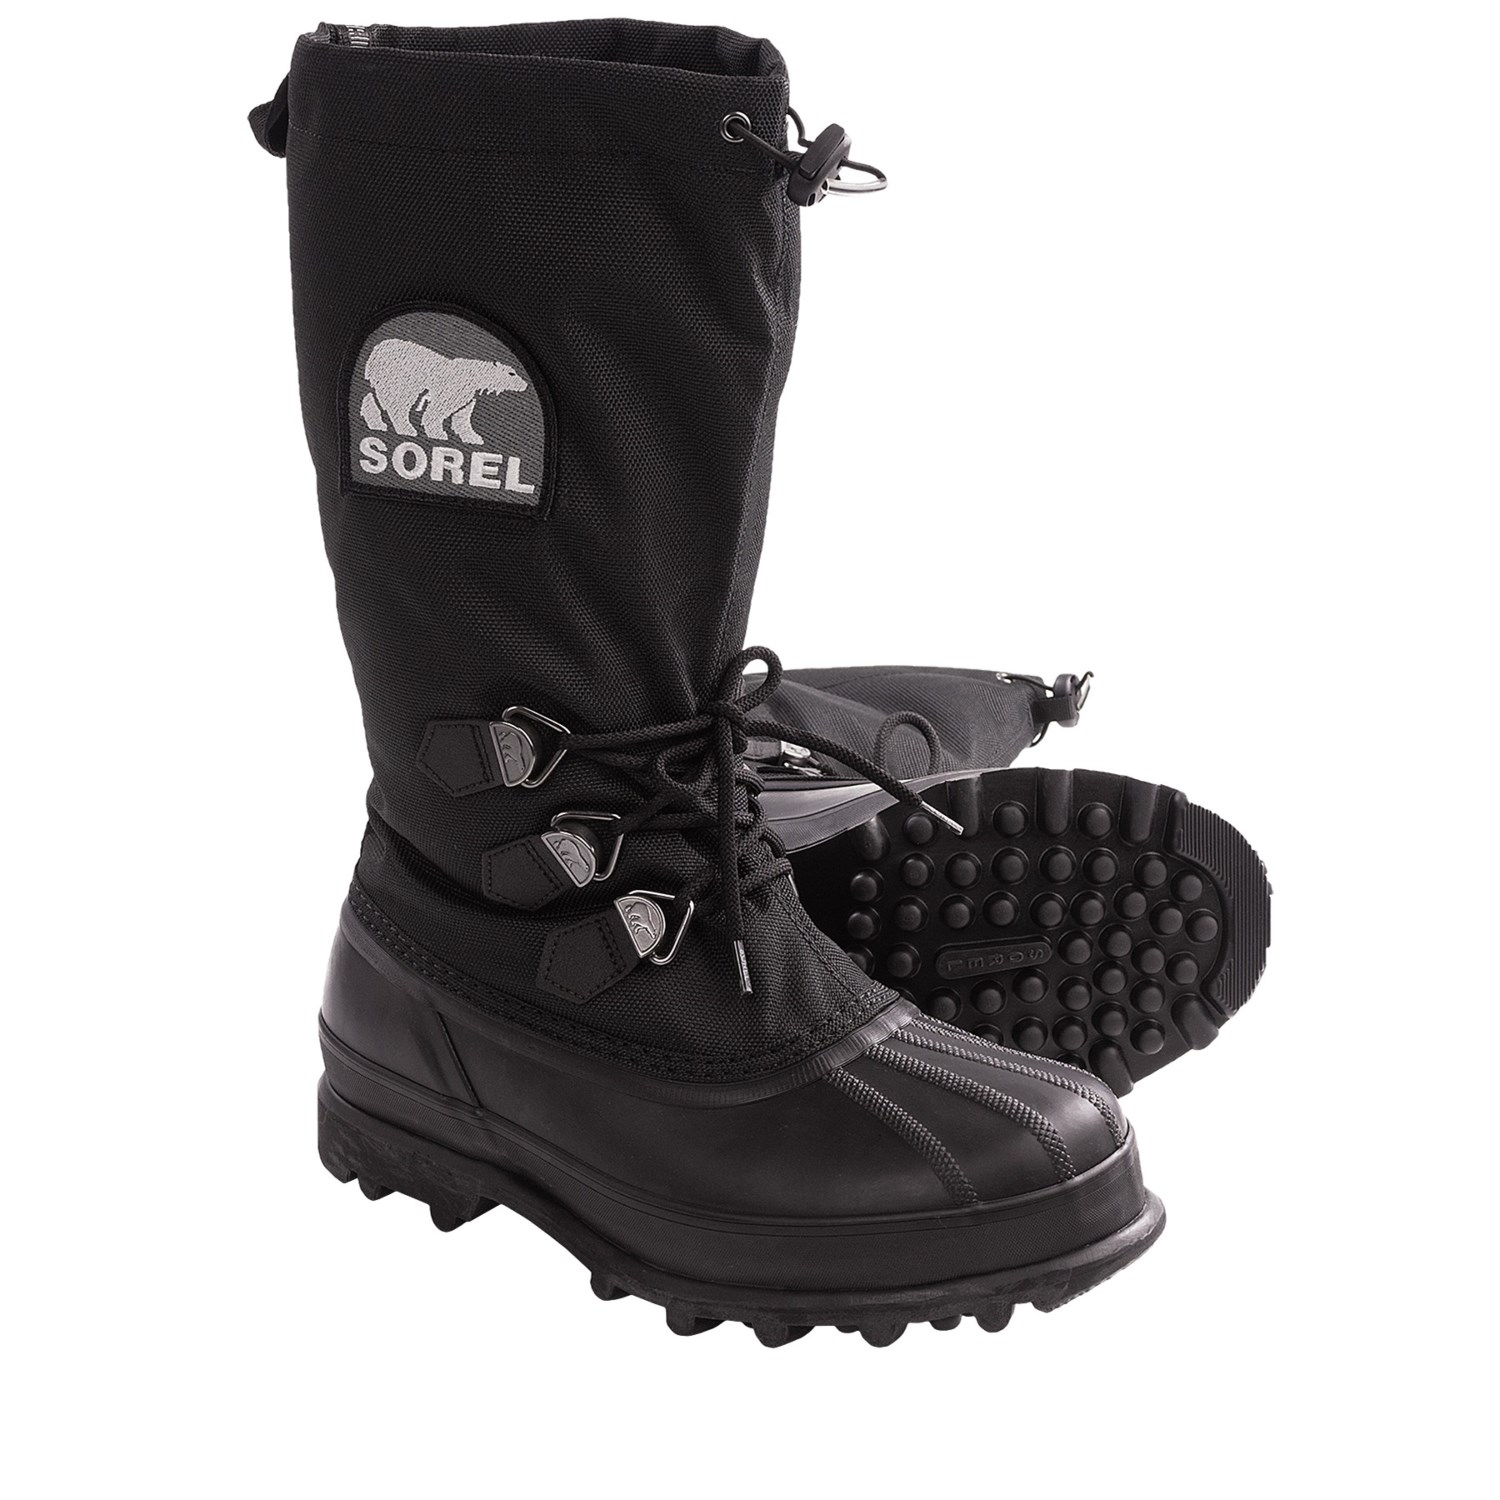 Sorel Promo Codes, Coupons & Deals. It couldn't be easier to snag up-to-the-minute July promo codes from Sorel. Just click here, and then subscribe to push notifications at the top of the page. That way, you'll be the first to know about piping hot deals, sales, and coupons.